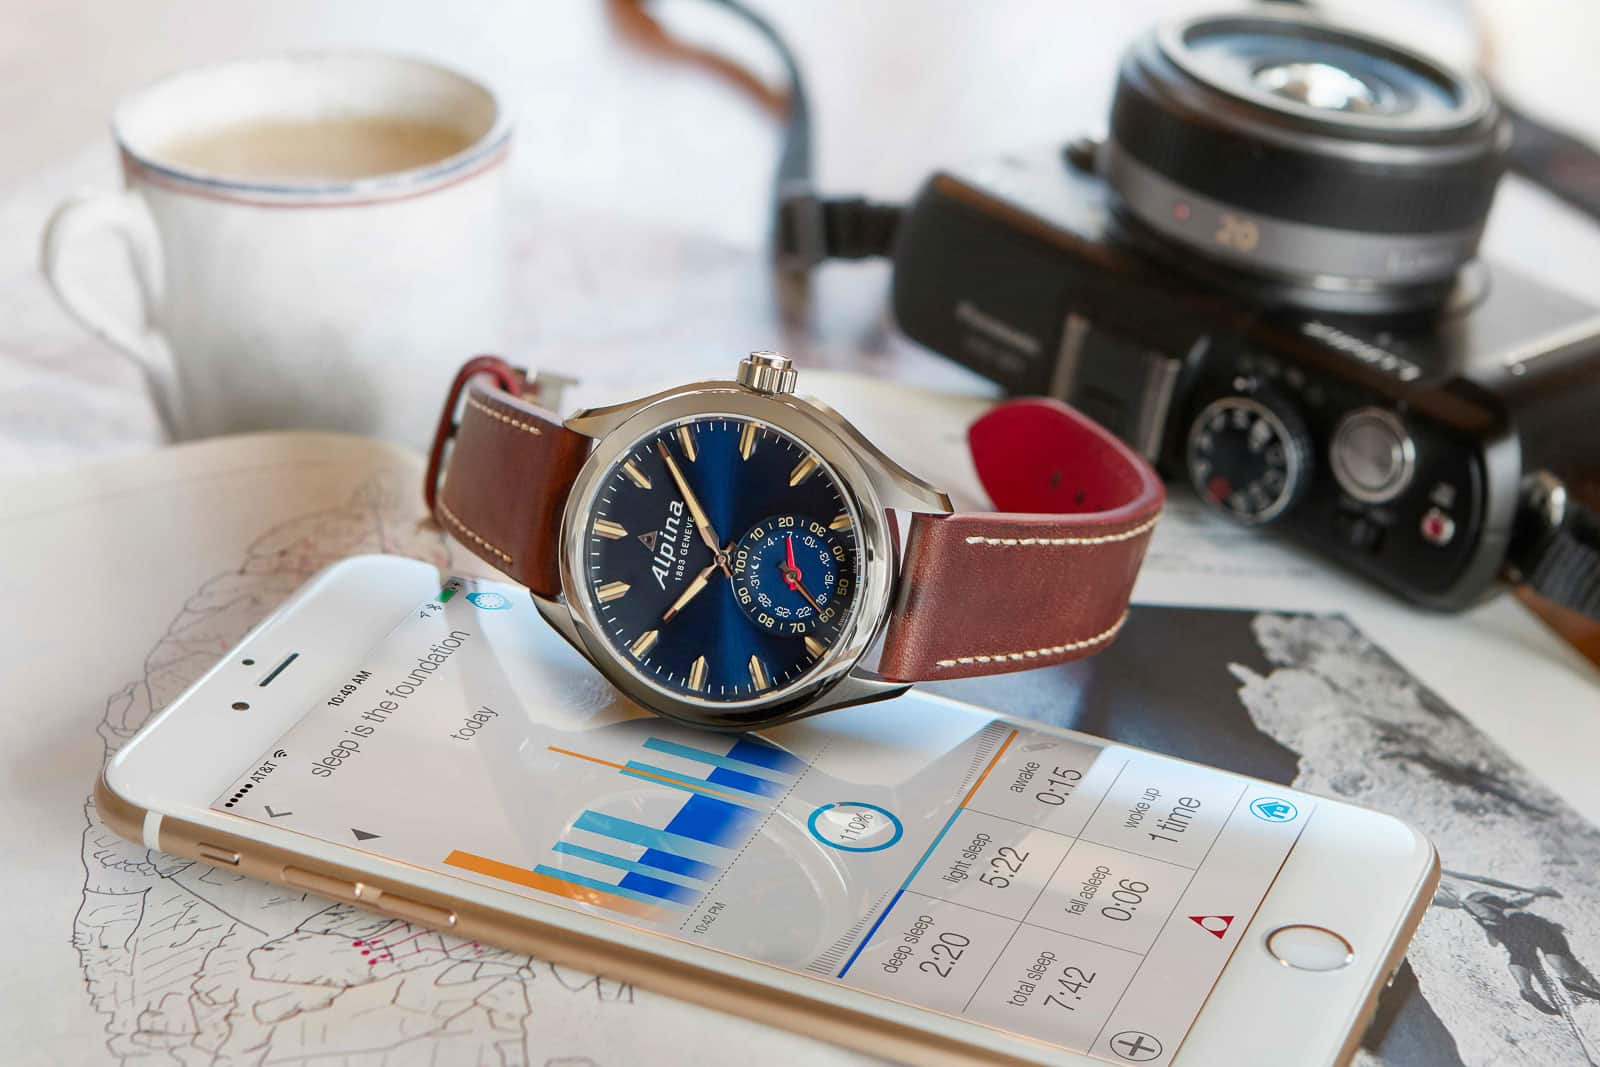 Blue Alpina Horological Smartwatch